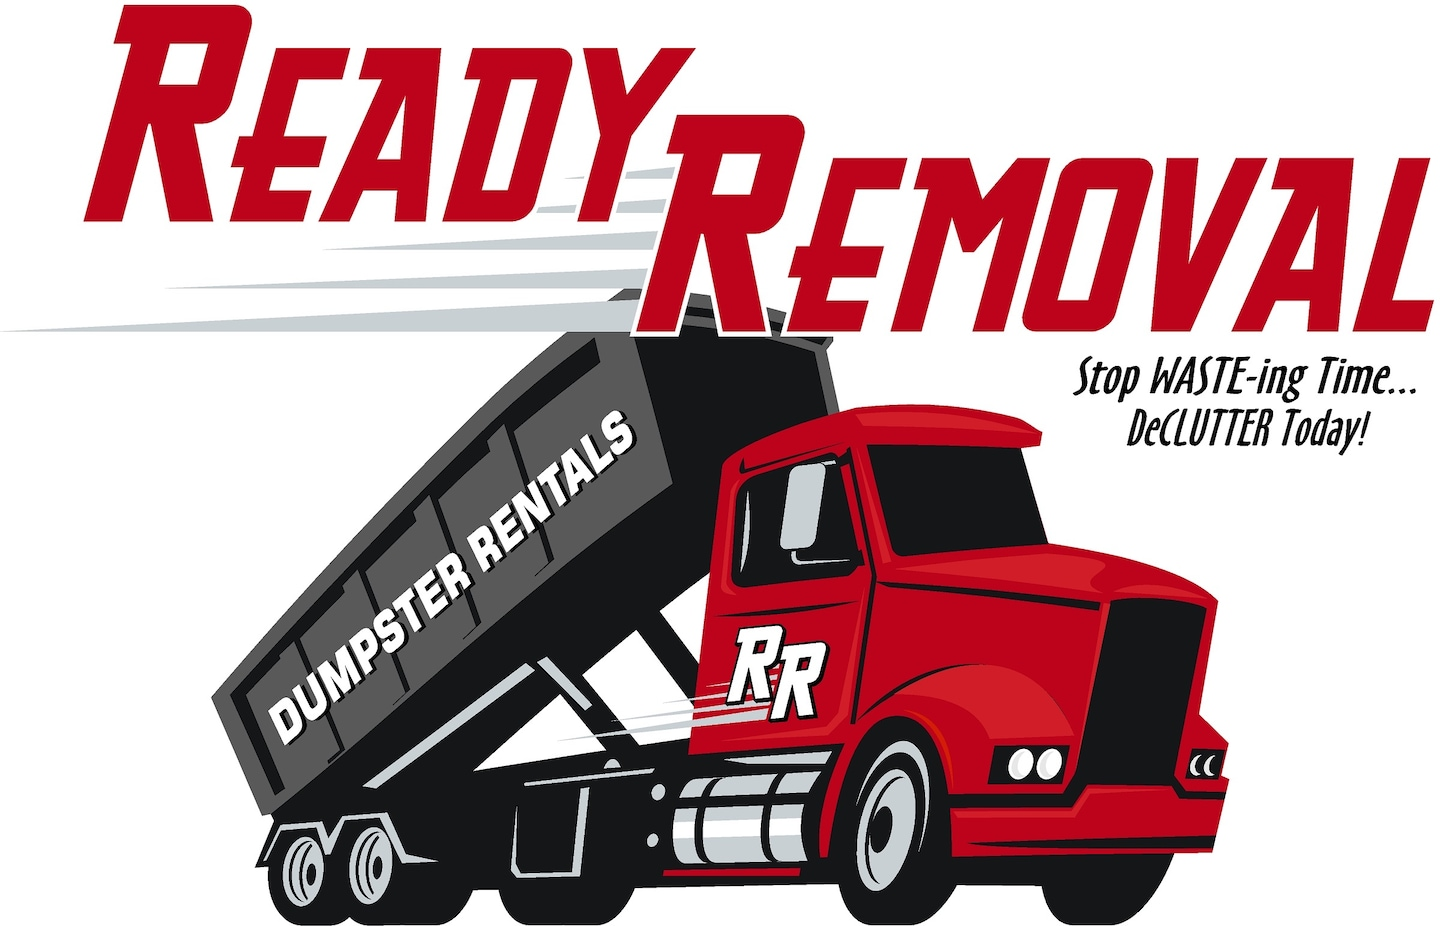 Ready Removal Dumpster Rentals